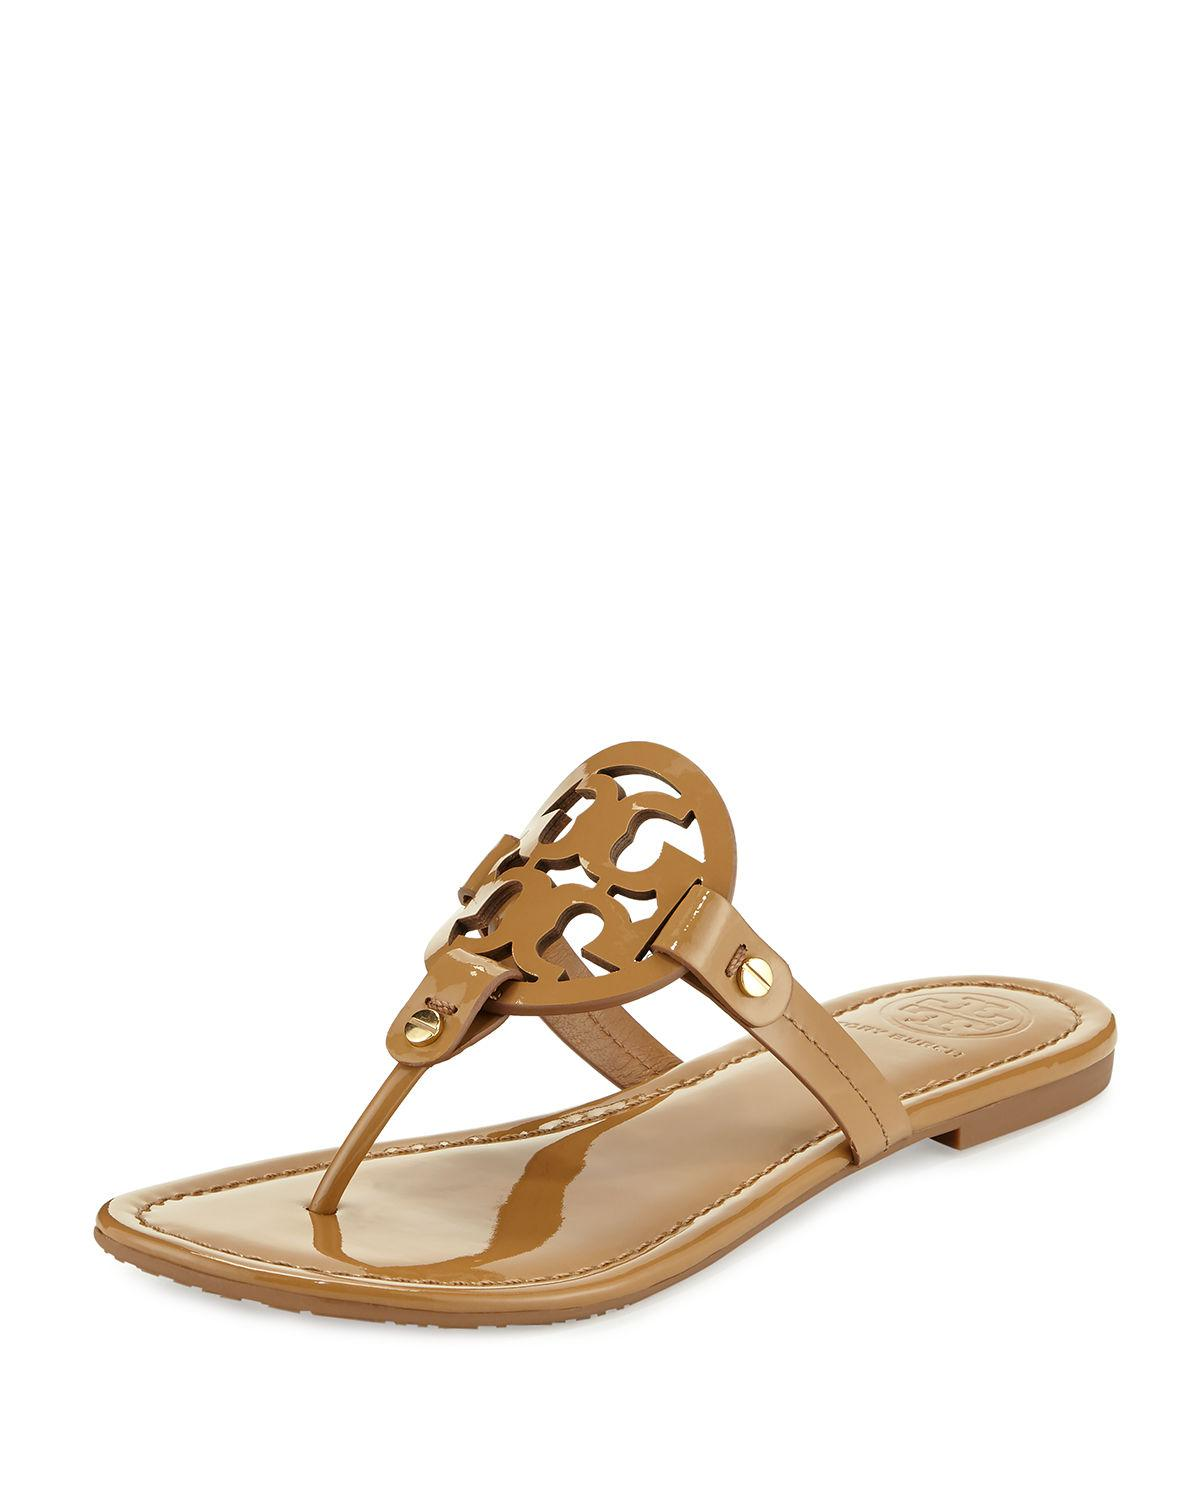 91c56e285e697 Tory Burch - Multicolor Miller Medallion Patent Leather Flat Thong - Lyst. View  fullscreen